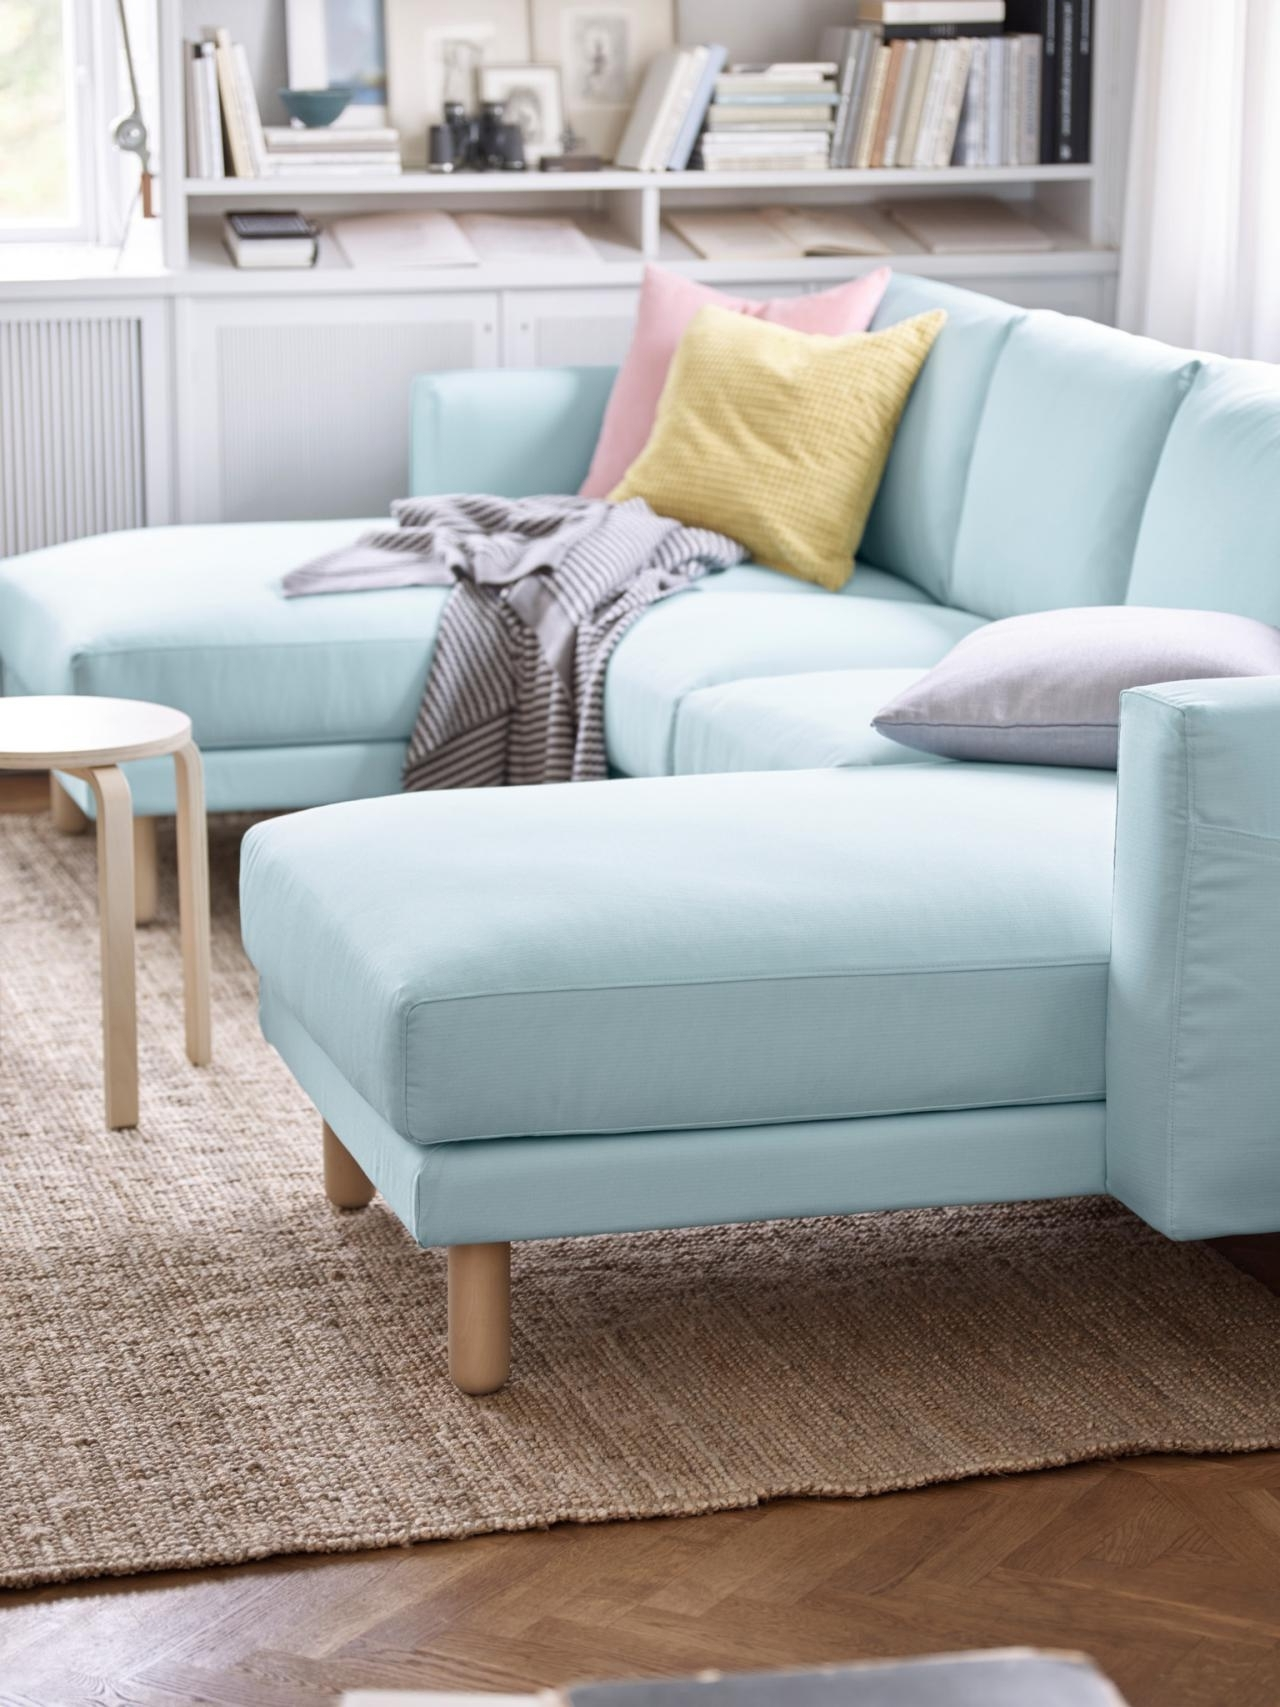 Widely Used Sectional Sofas For Small Rooms With Furniture Bedroom Narrow Sofa Compact Small Apartment Size (View 16 of 20)